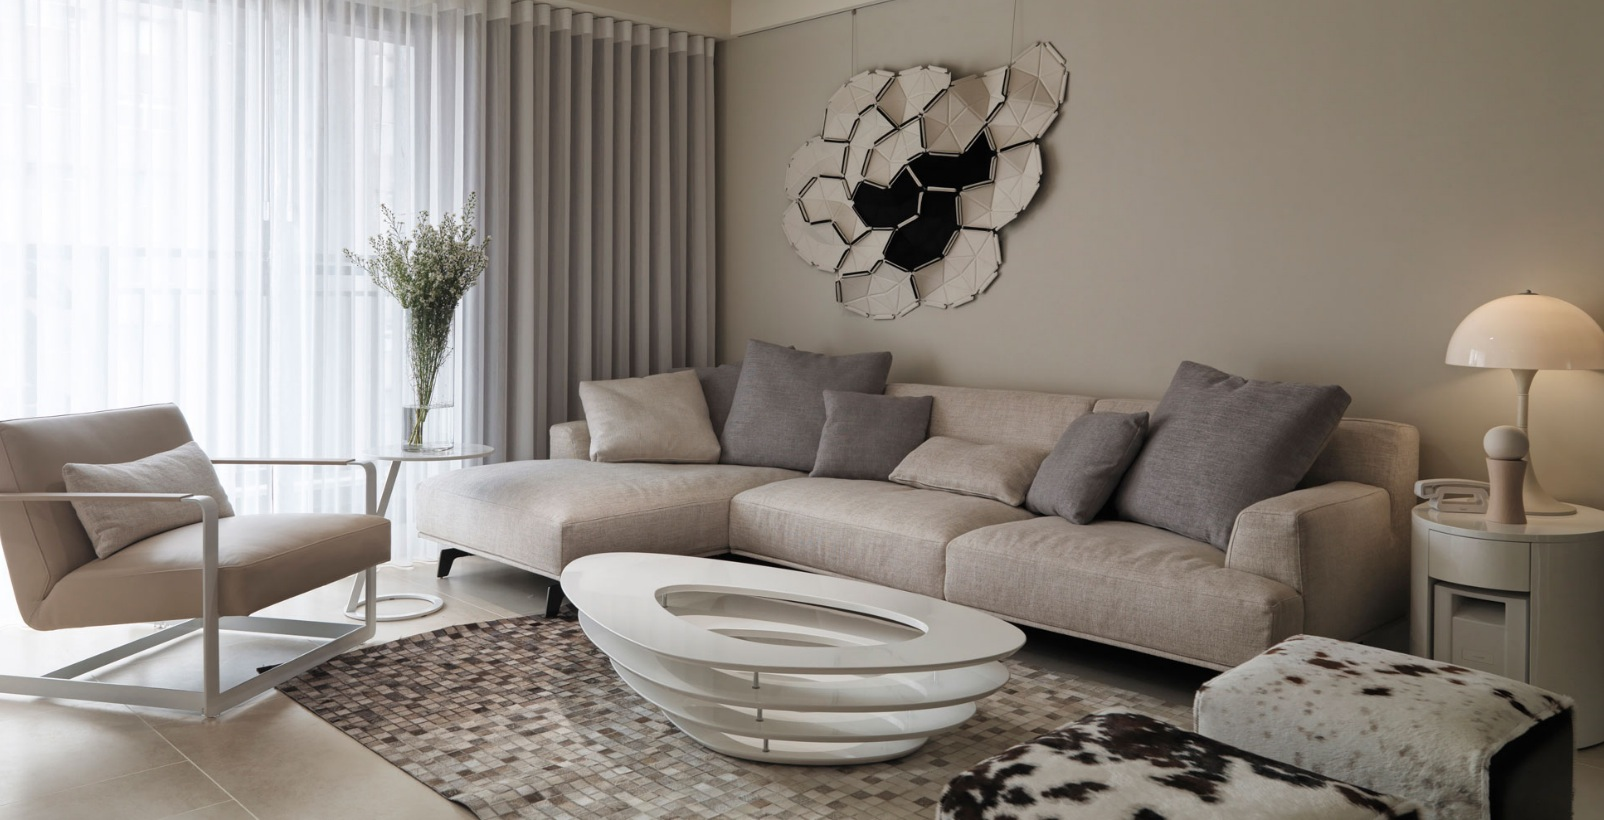 Neutral contemporary living room interior design ideas for Neutral living room ideas